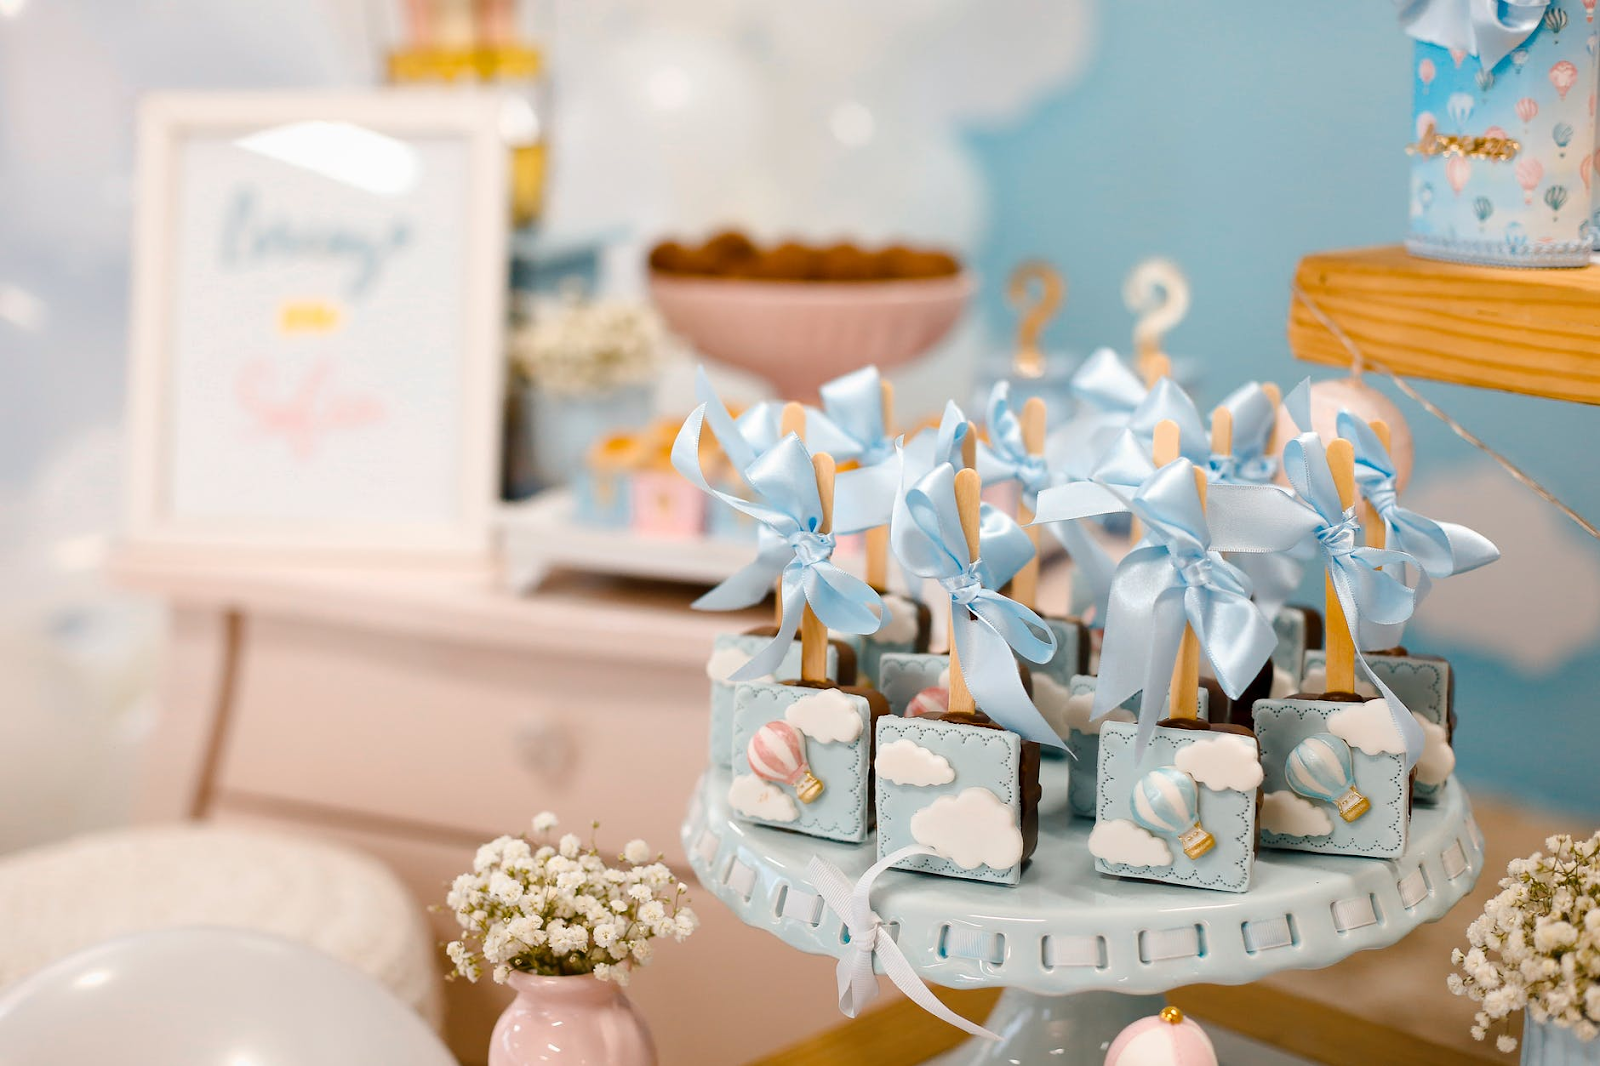 Baby shower invitations for boys: blue party favors at a baby shower